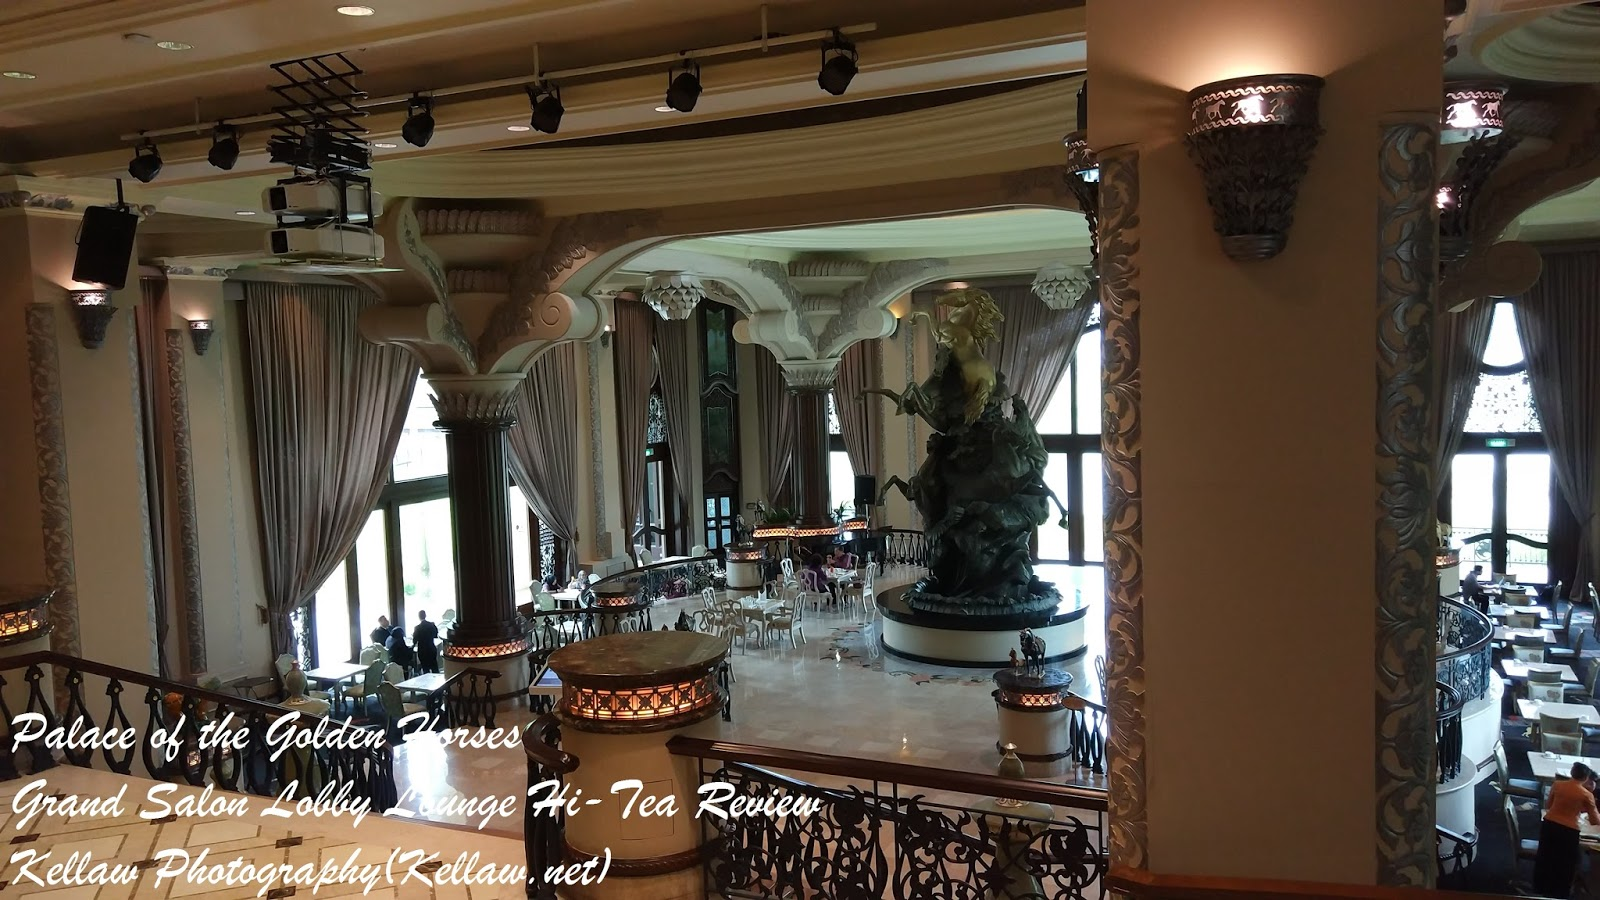 You should try the Grand Salon Lobby Lounge s Heavenly High-Tea at the  Palace of the Golden Horses ab82e2e0b4